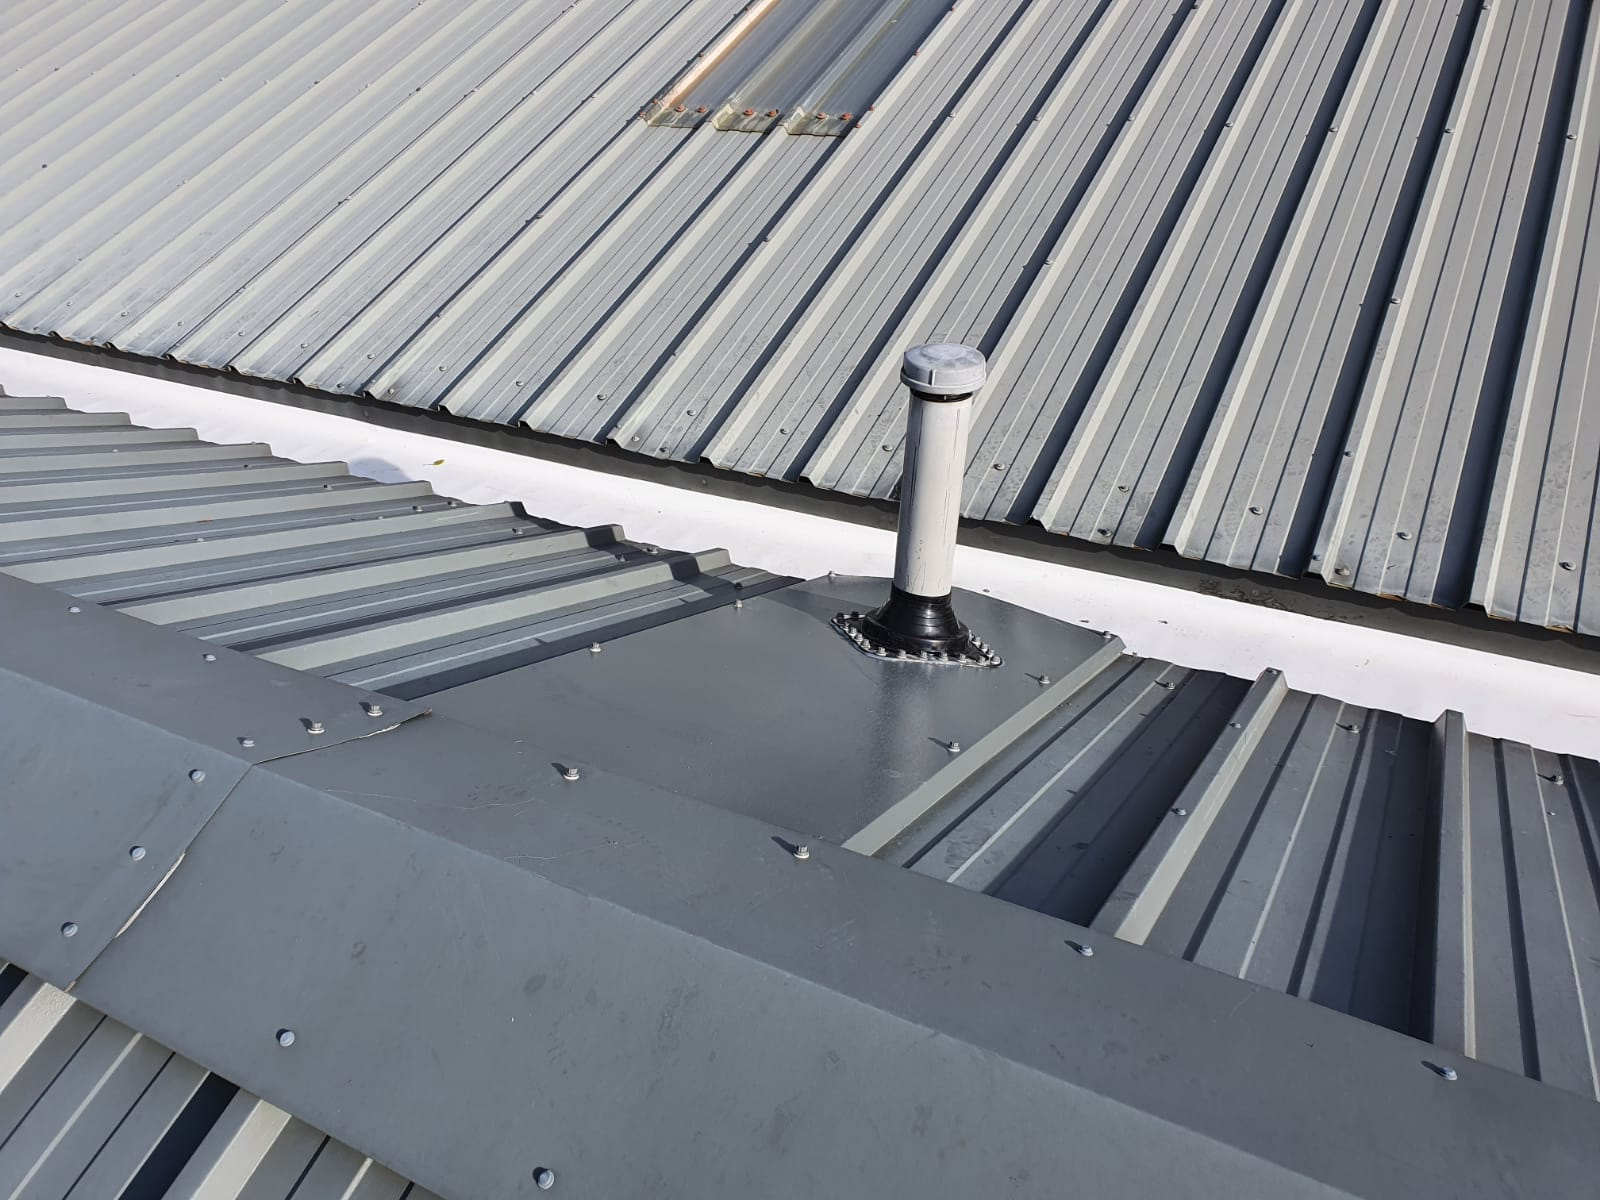 Leaking gutter replacement office roof in Bearstead Maidstone Kent